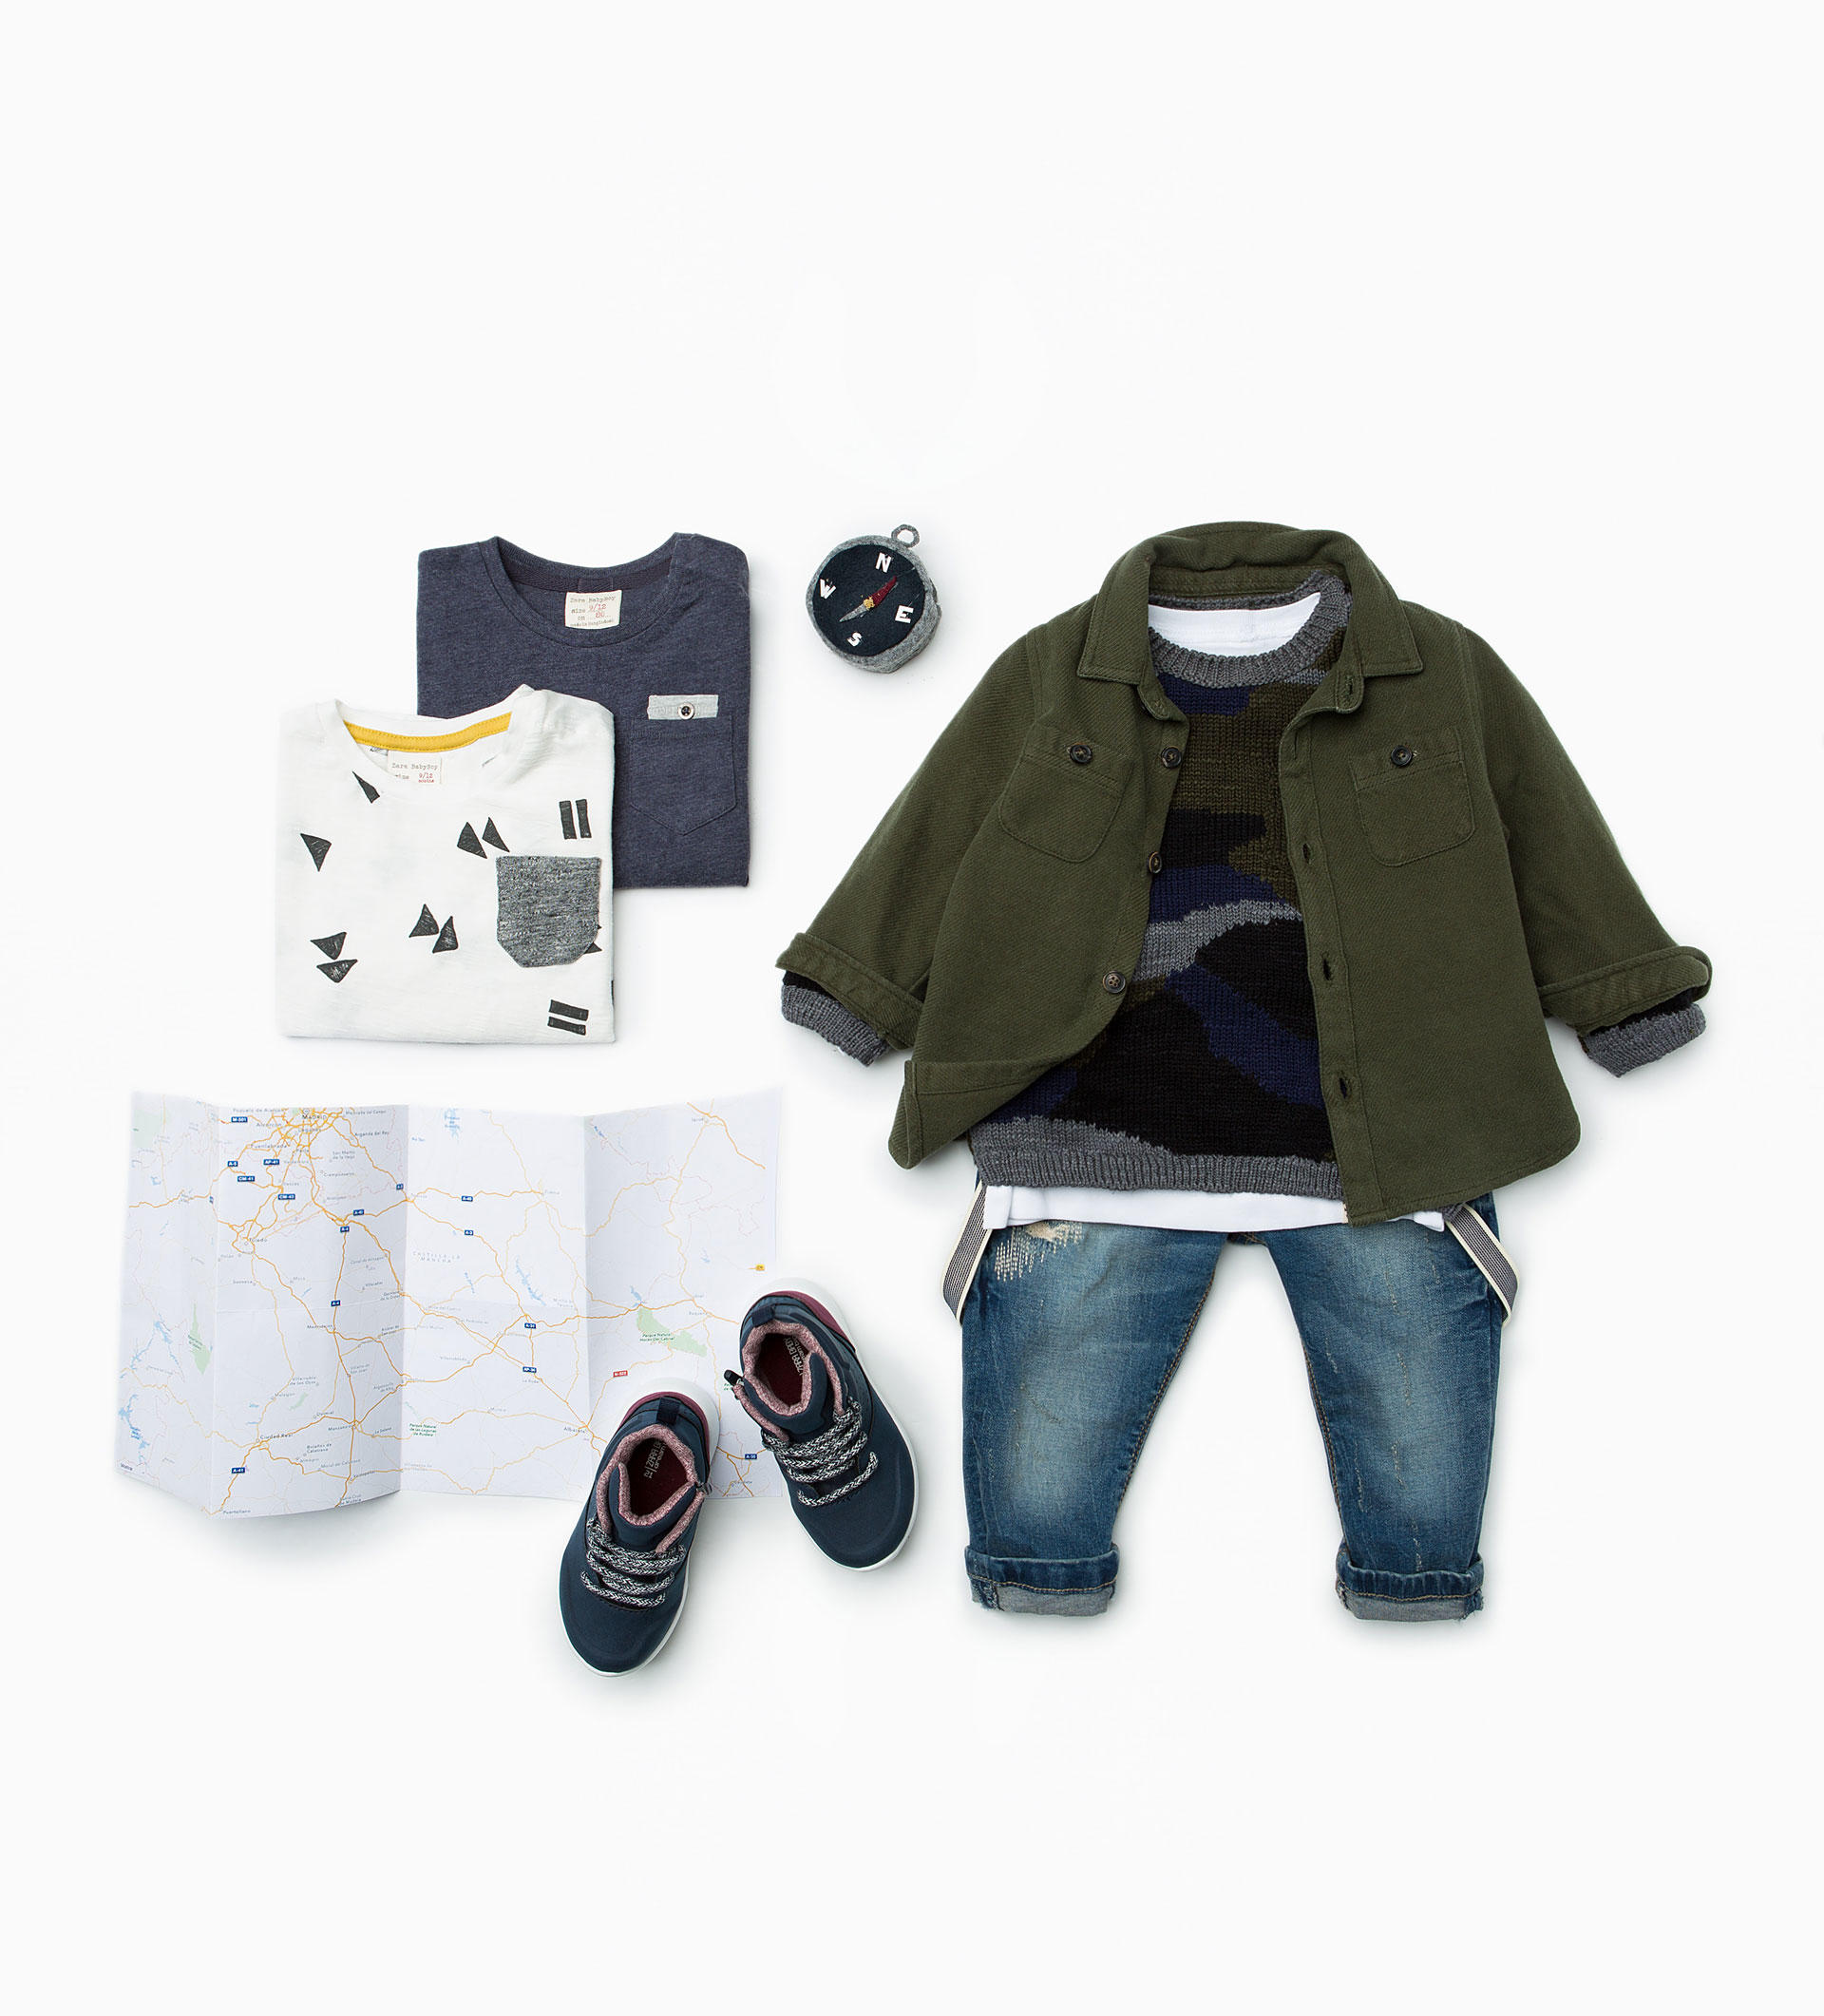 687c6d832c7a Shop by Look - Baby boy (3 months - 3 from ZARA